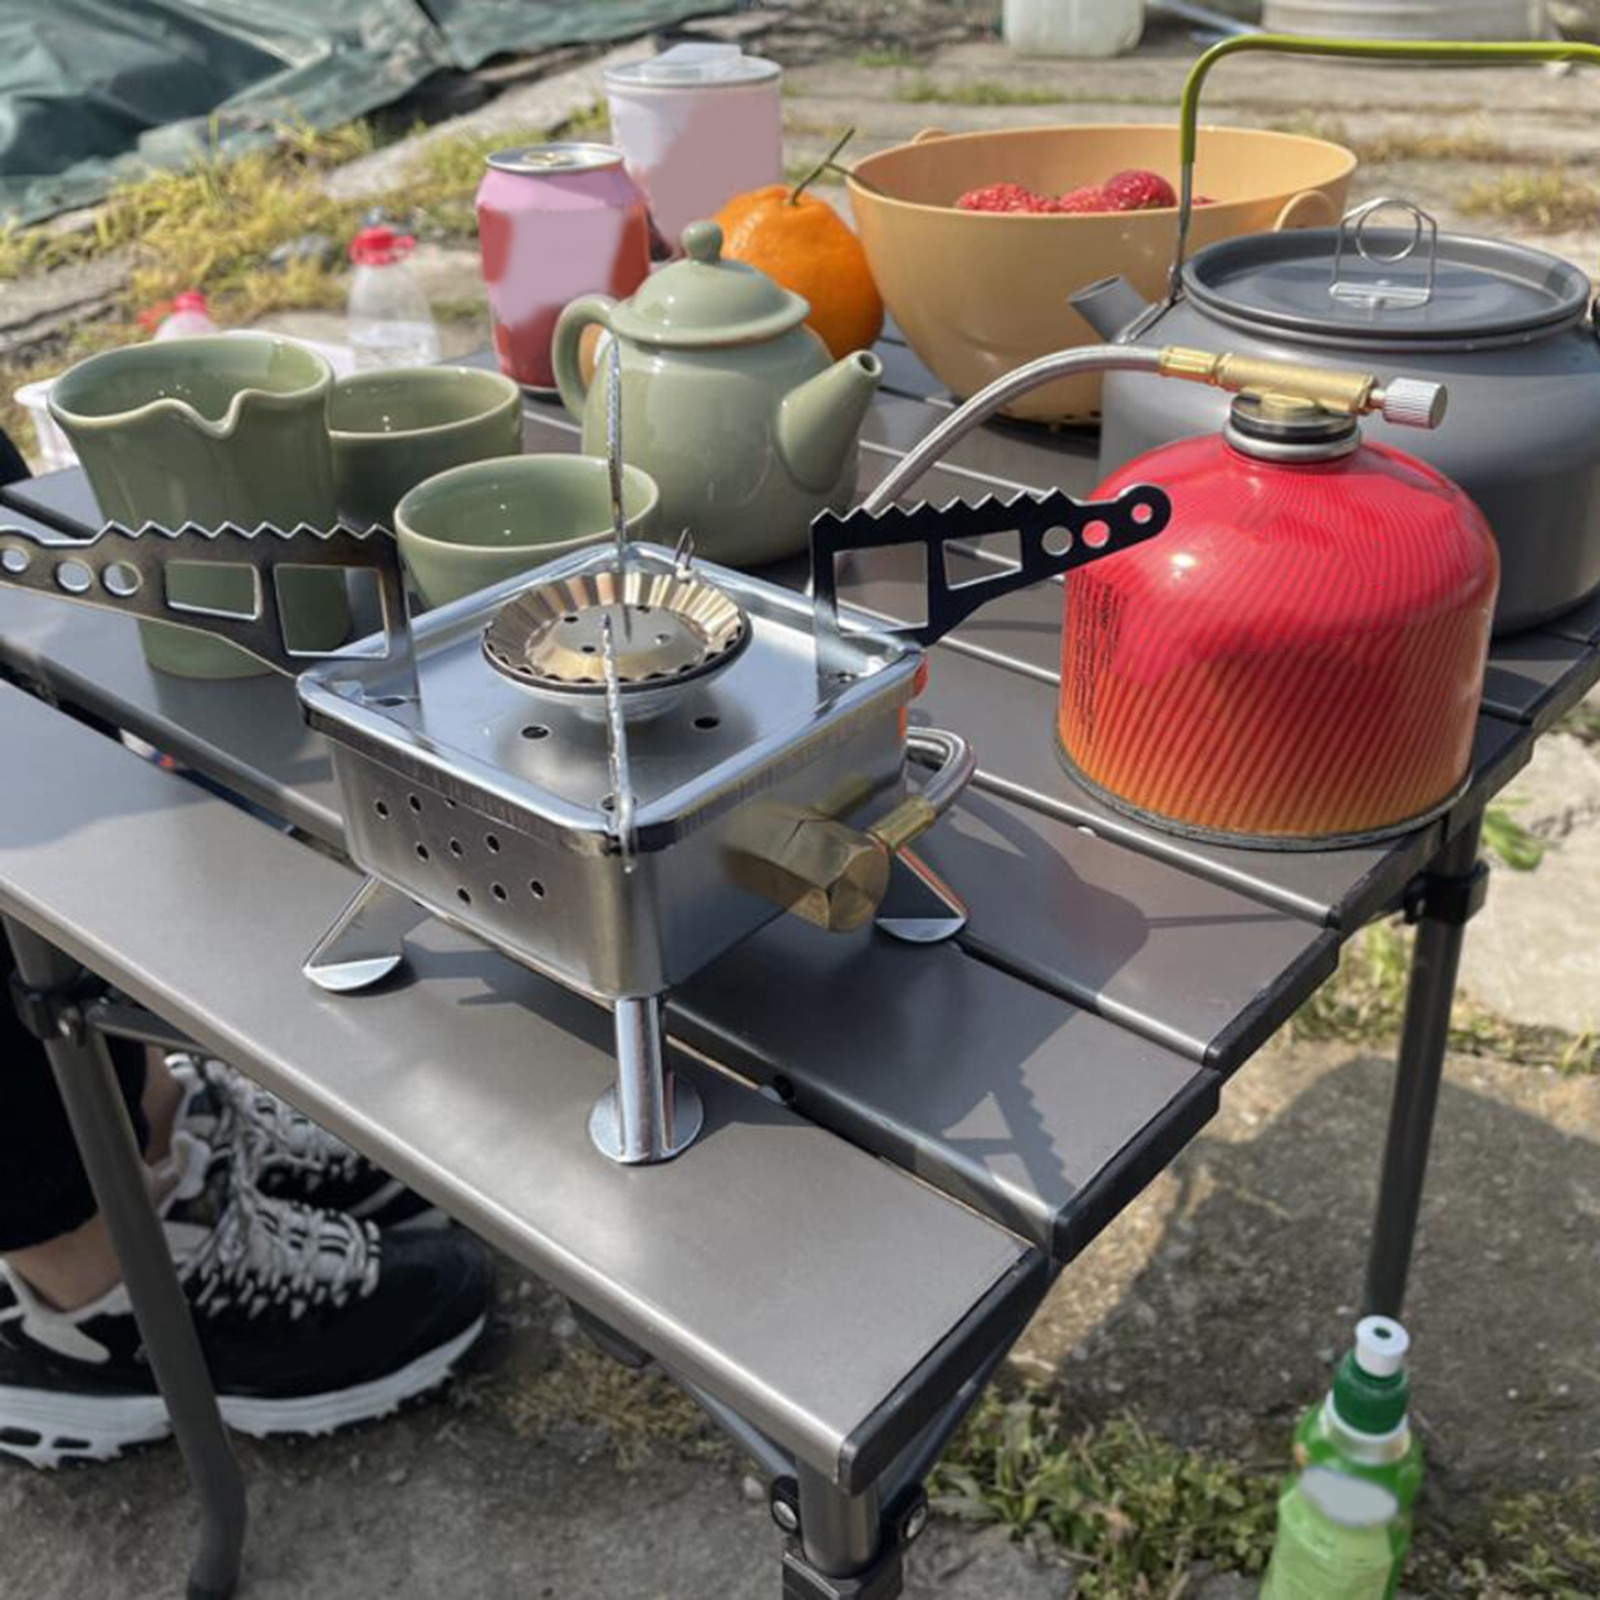 Portable Gas Stove Burner Camping Butane Propane Burner Cooker Picnic BBQ Grill Cooker Outdoor Hiking Windproof Backpacking